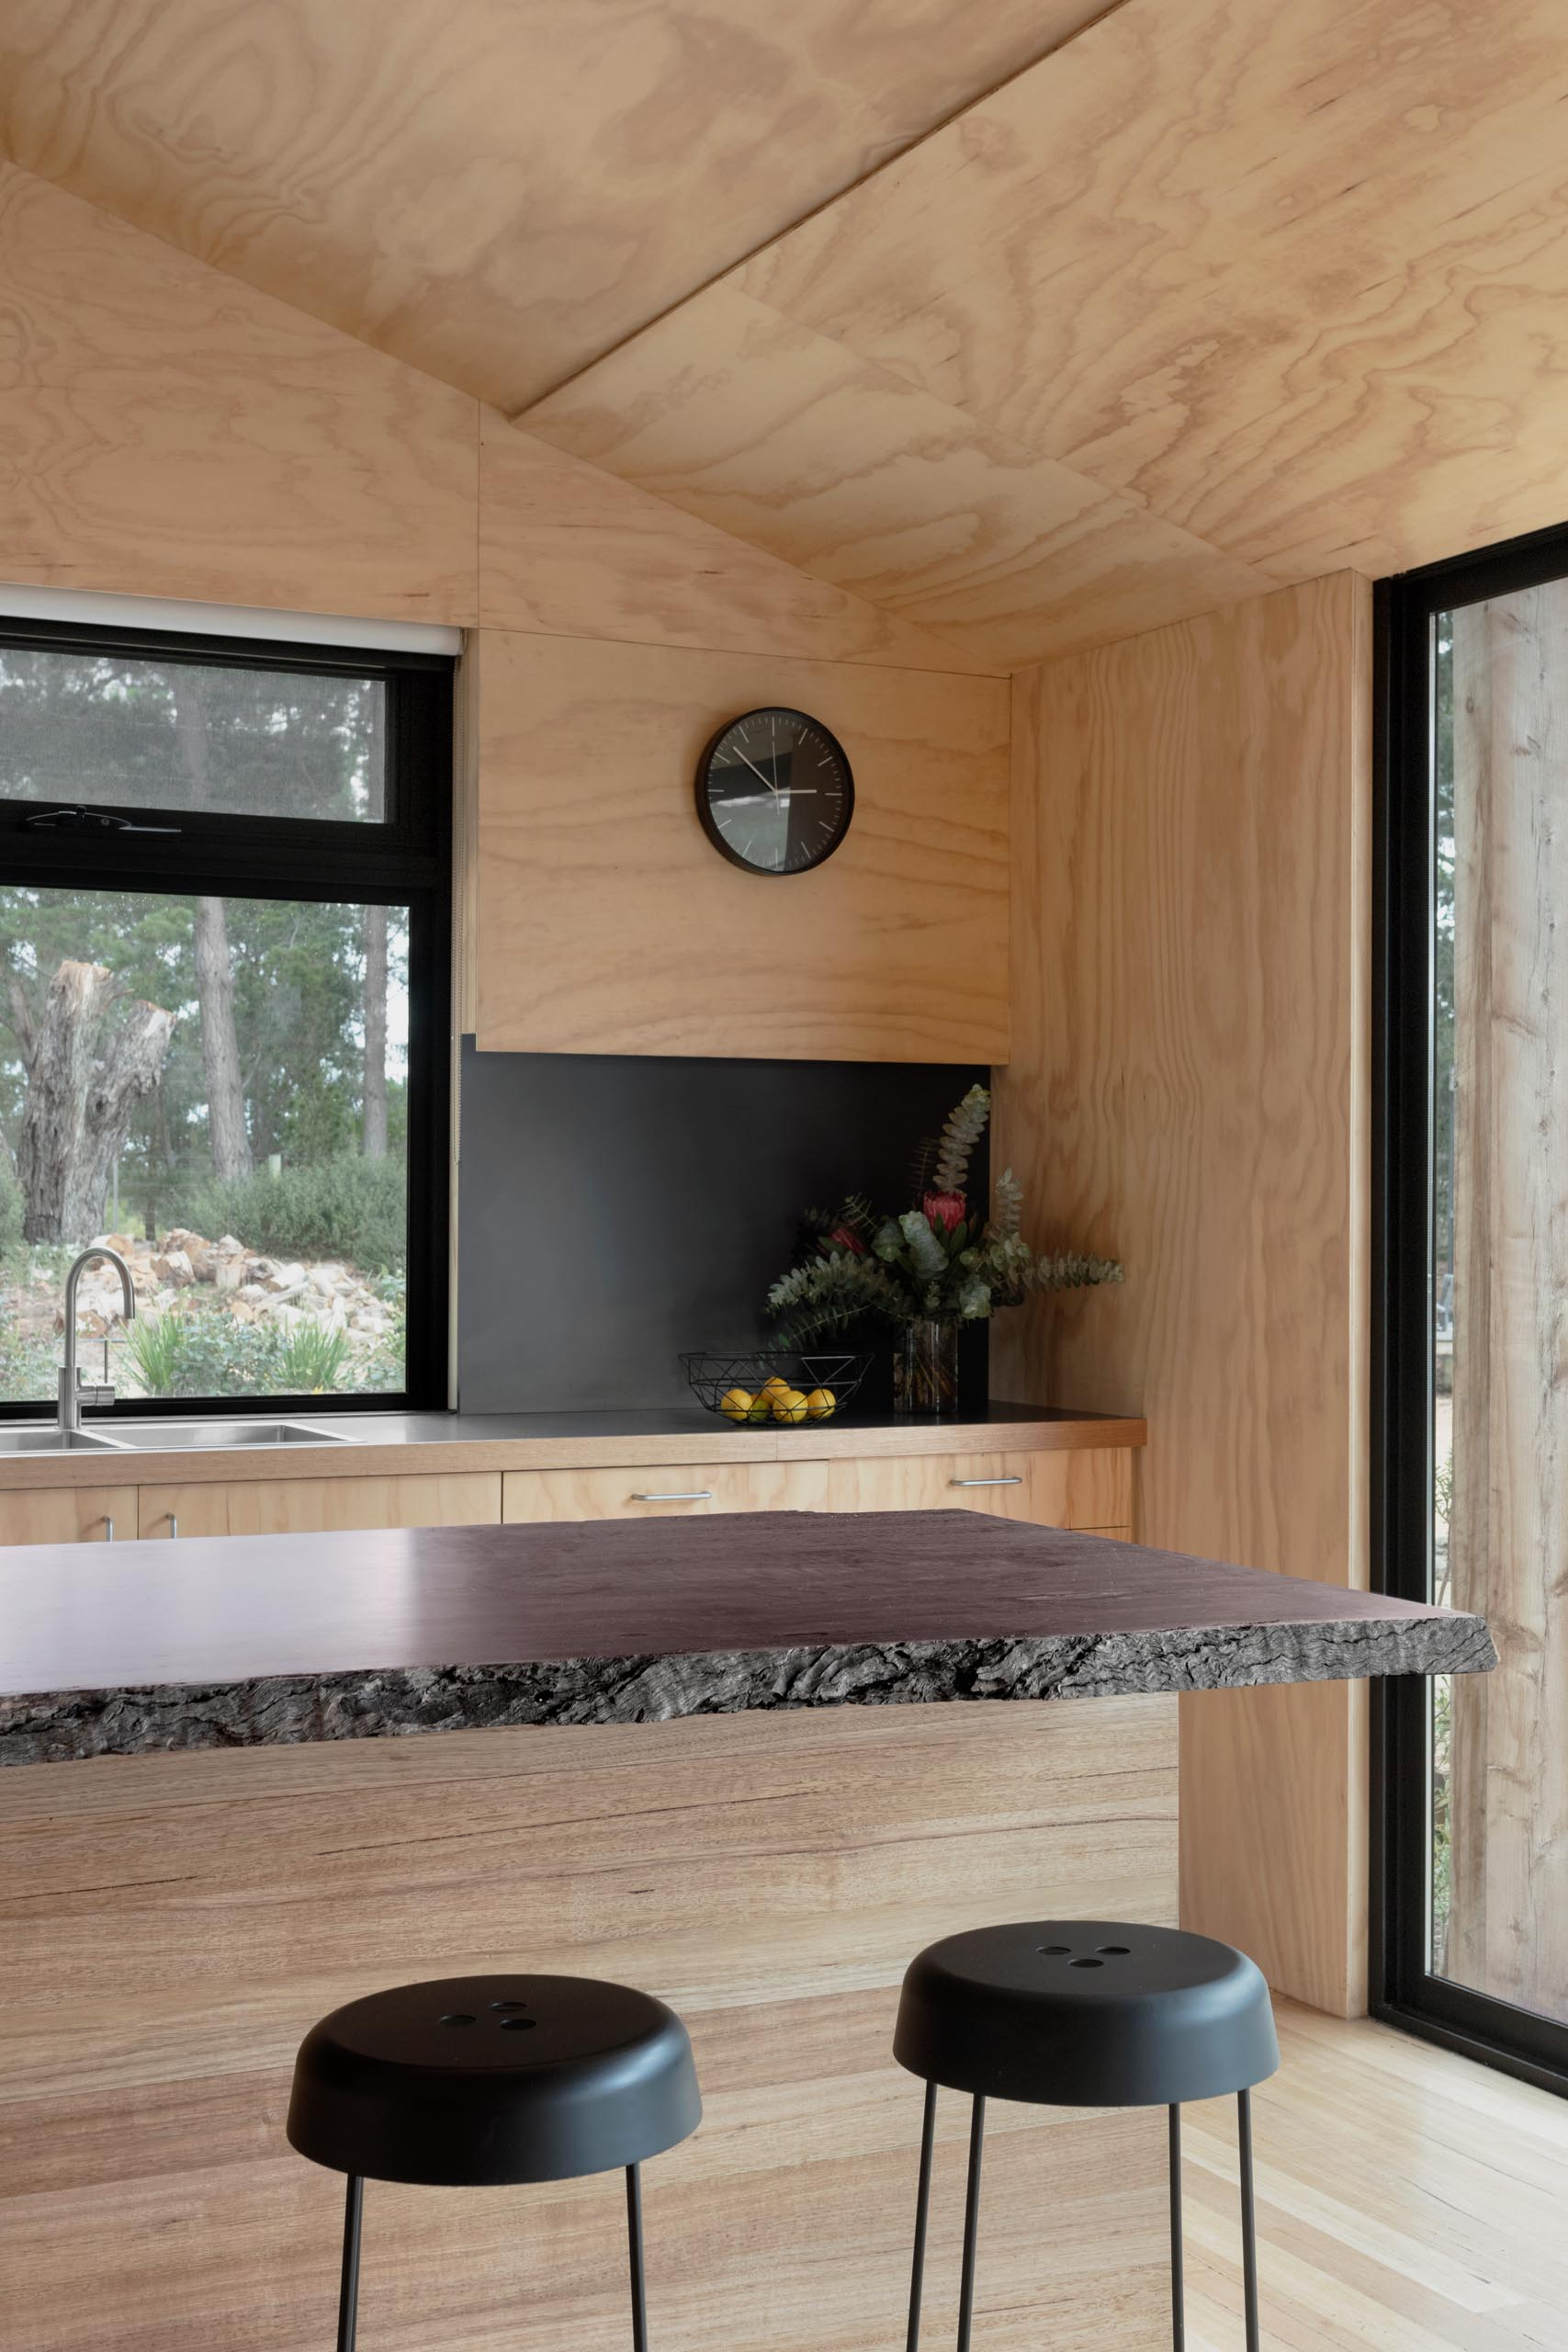 A modern plywood kitchen with a matte black countertop and backsplash, and an island with a live edge wood countertop.